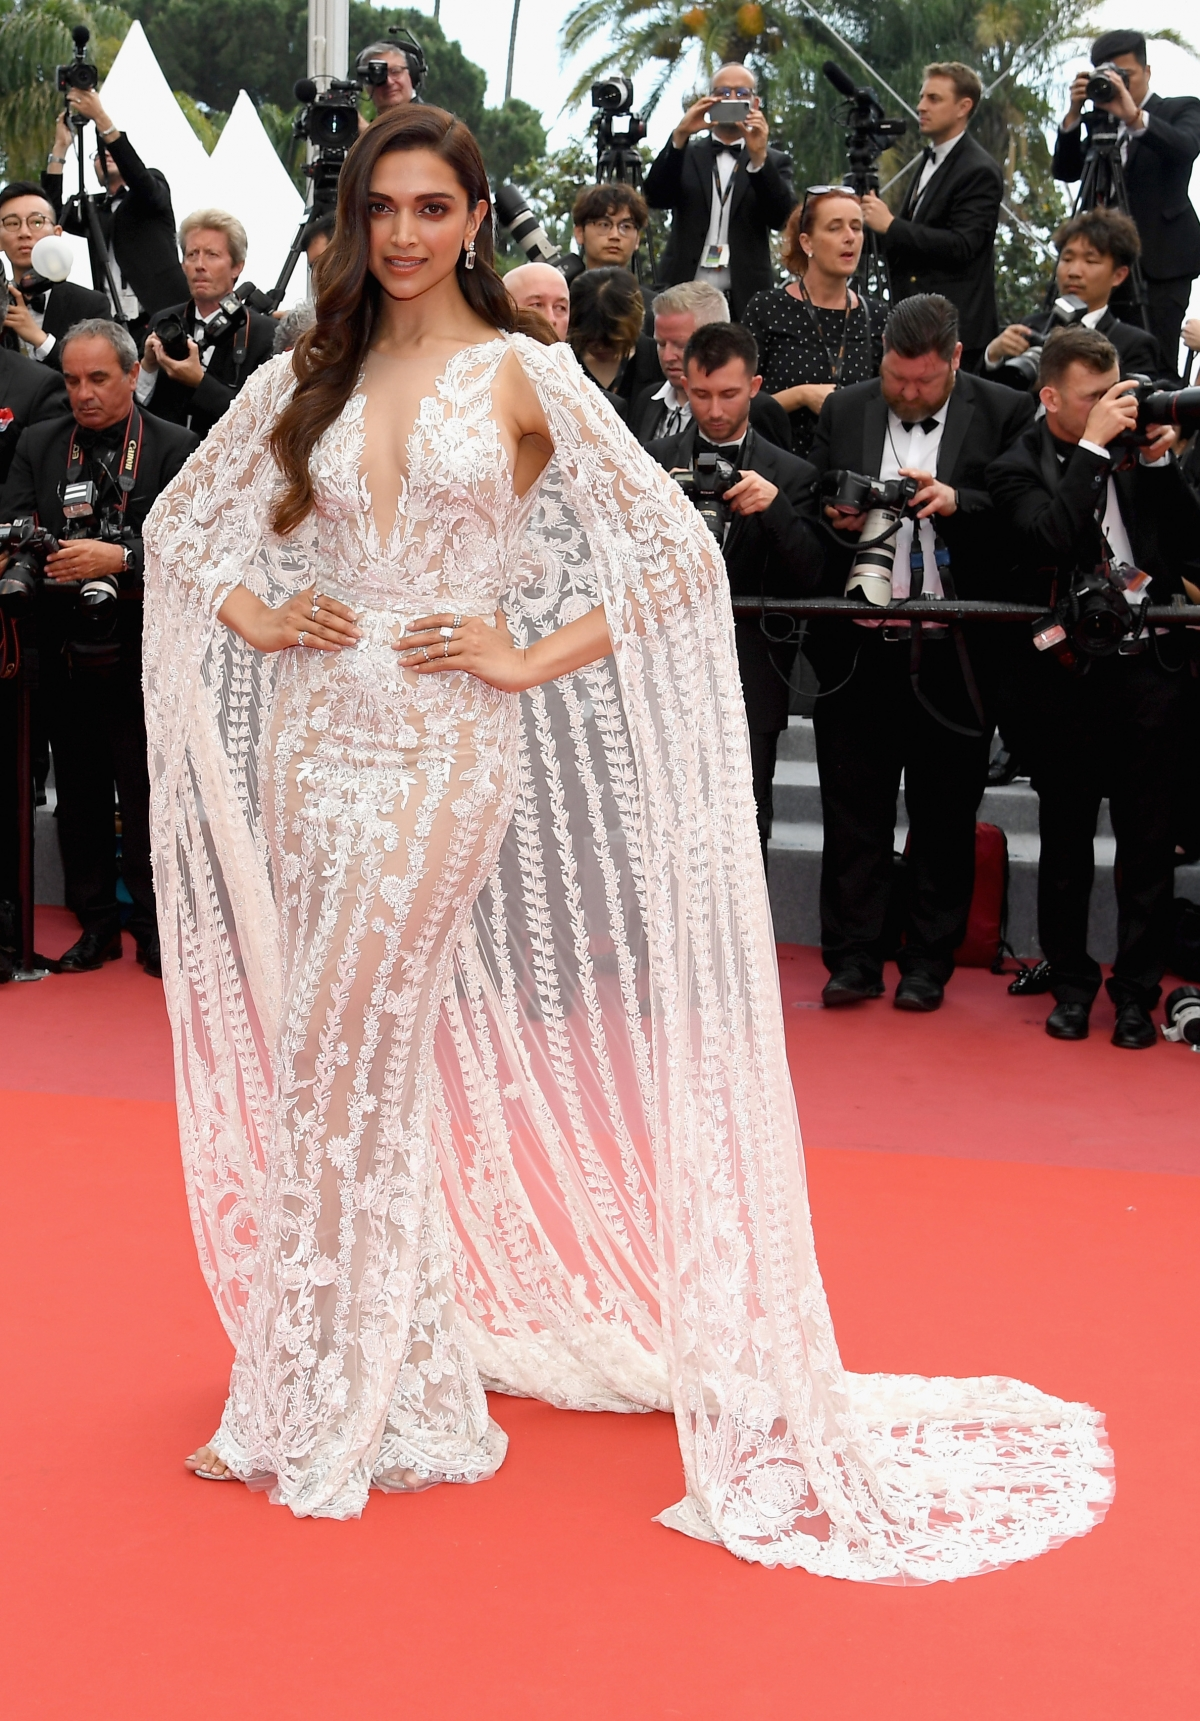 kangana, deepika, huma : bollywood divas slay the cannes red carpet